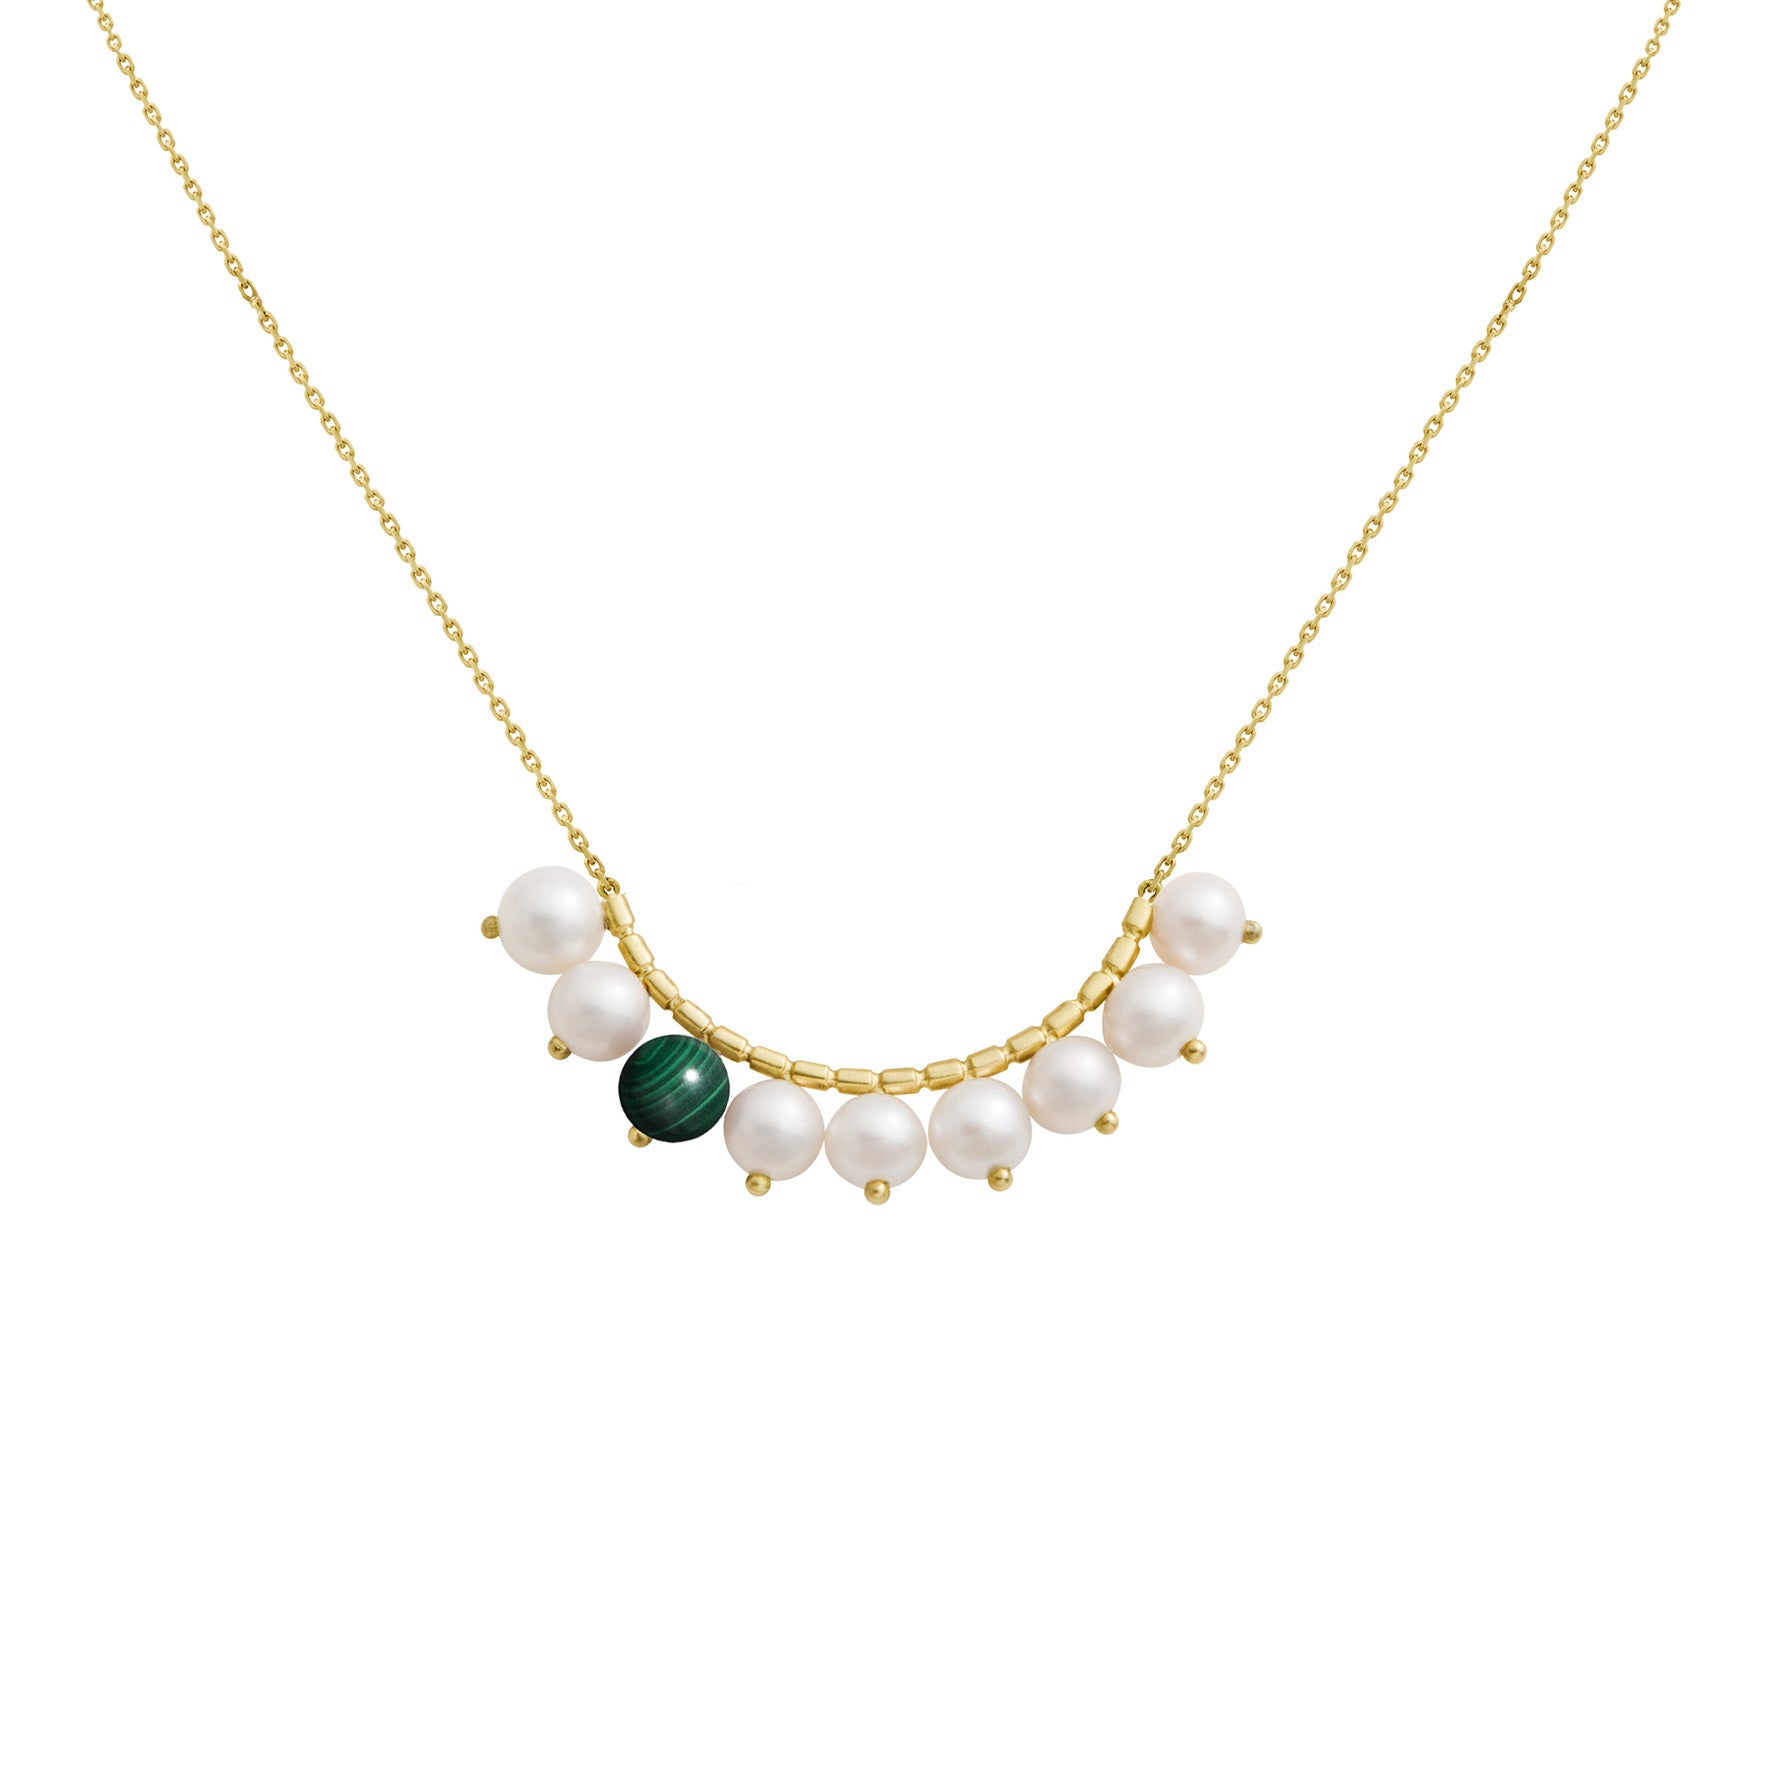 Collier Constellation Or jaune, Perles et Malachite